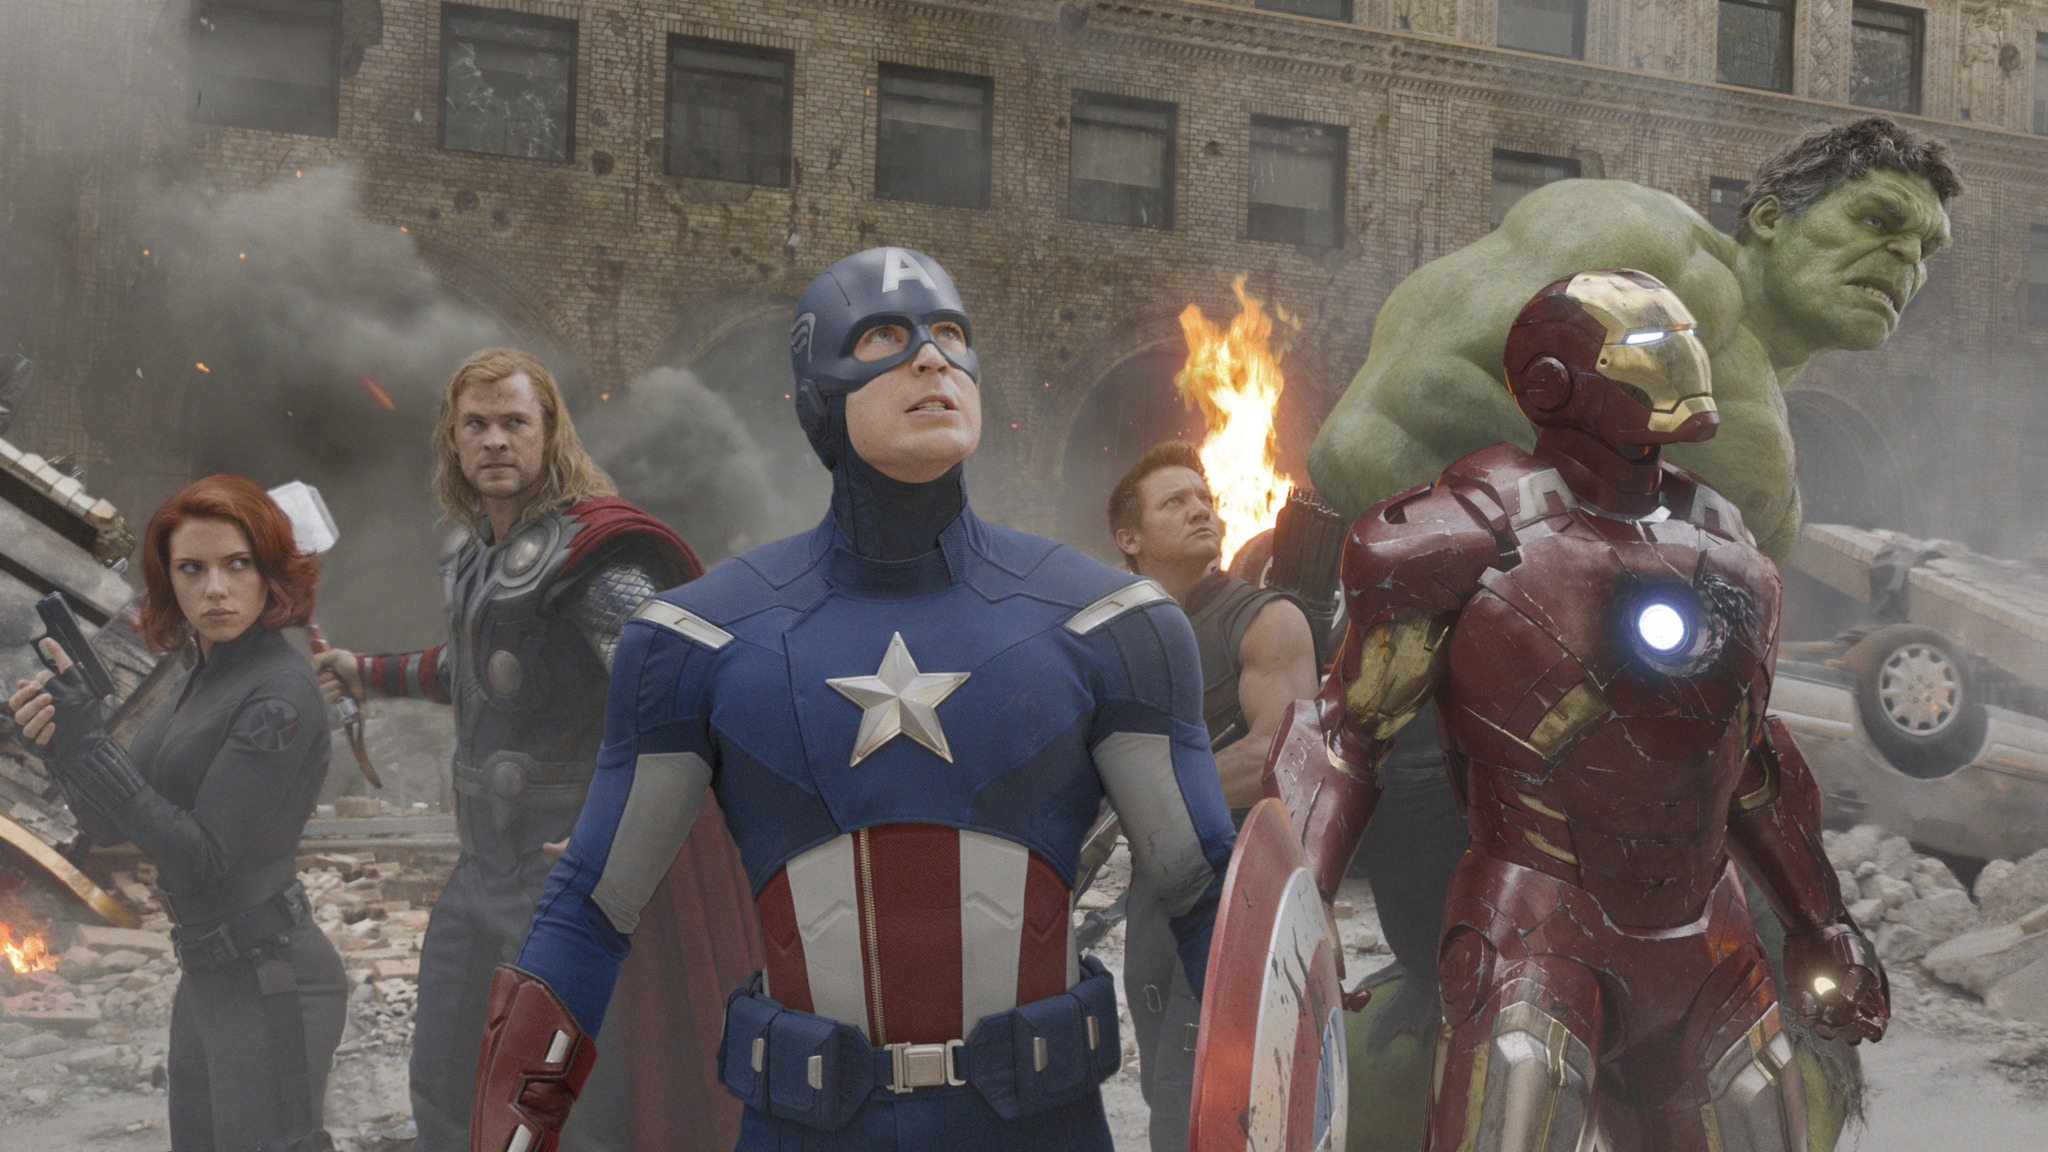 """Marvel's The Avengers""L to R: Black Widow (Scarlett Johansson), Thor (Chris Hemsworth), Captain America (Chris Evans), Hawkeye (Jeremy Renner), Iron Man (Robert Downey Jr.), and Hulk (Mark Ruffalo)Ph: Film Frame © 2011 MVLFFLLC. TM & © 2011 Marvel. All Rights Reserved."